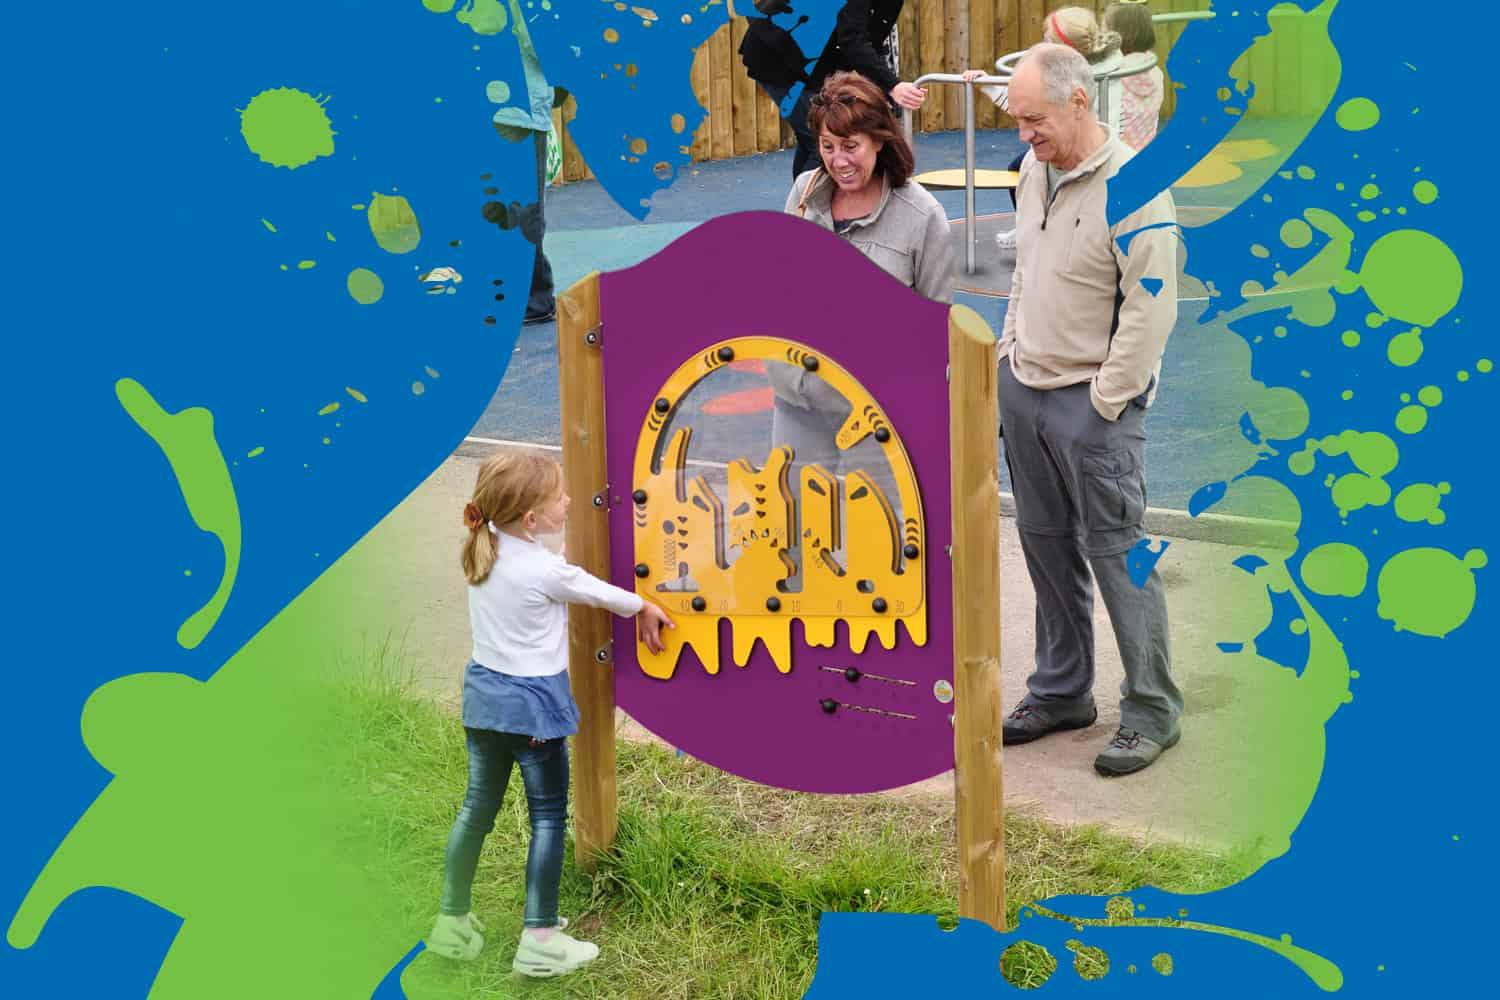 Play Panels for Public Play Areas